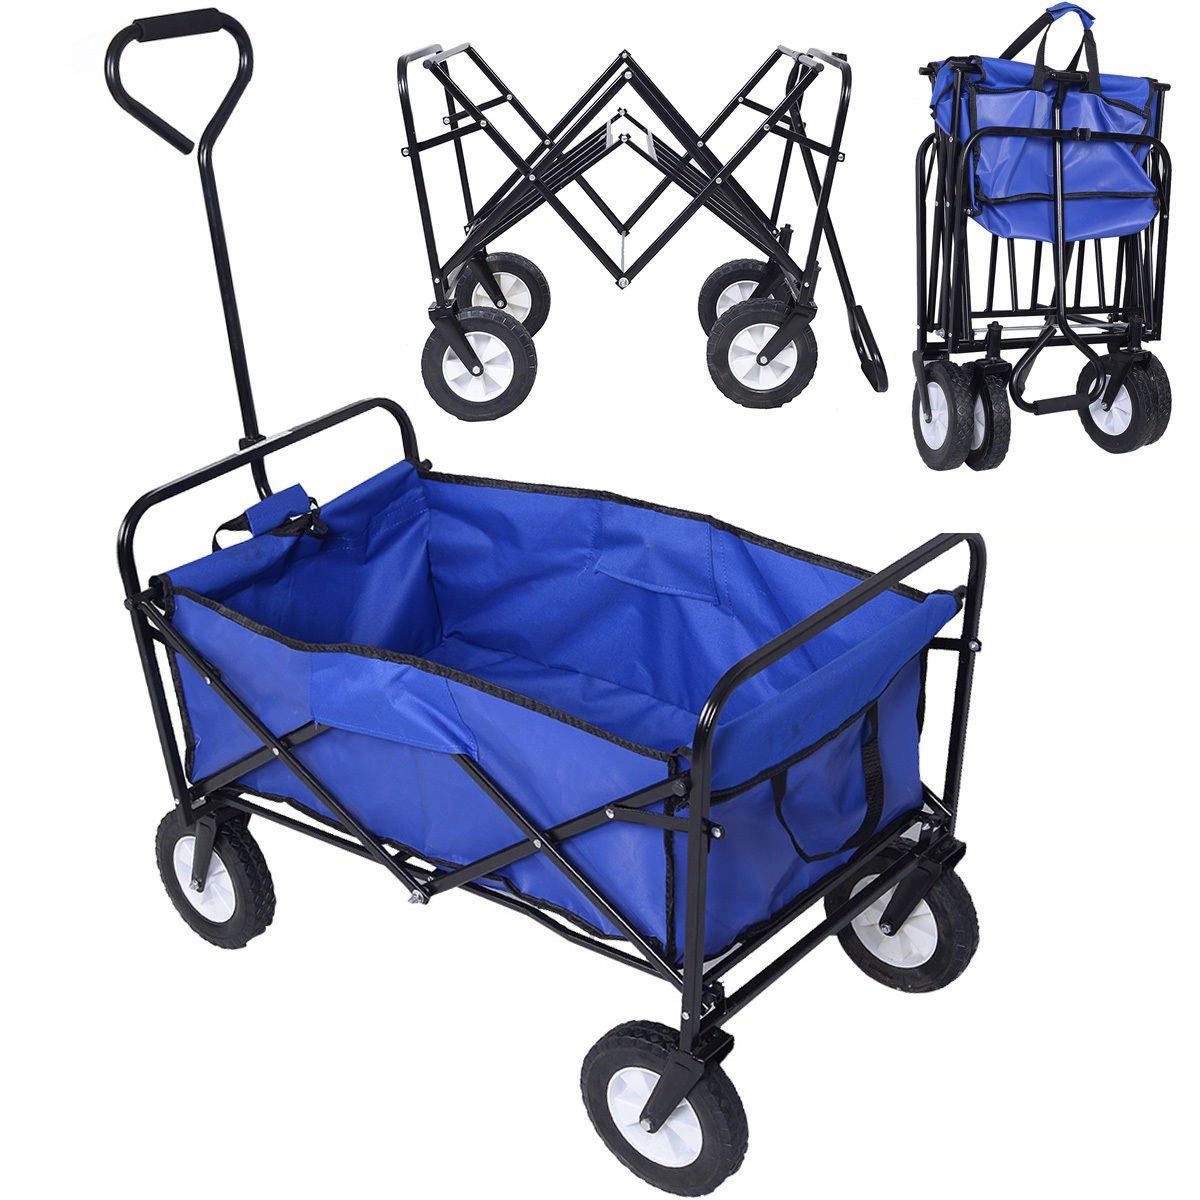 Collapsible Folding Wagon Cart Garden Buggy Shopping Beach Toy Sports Blue